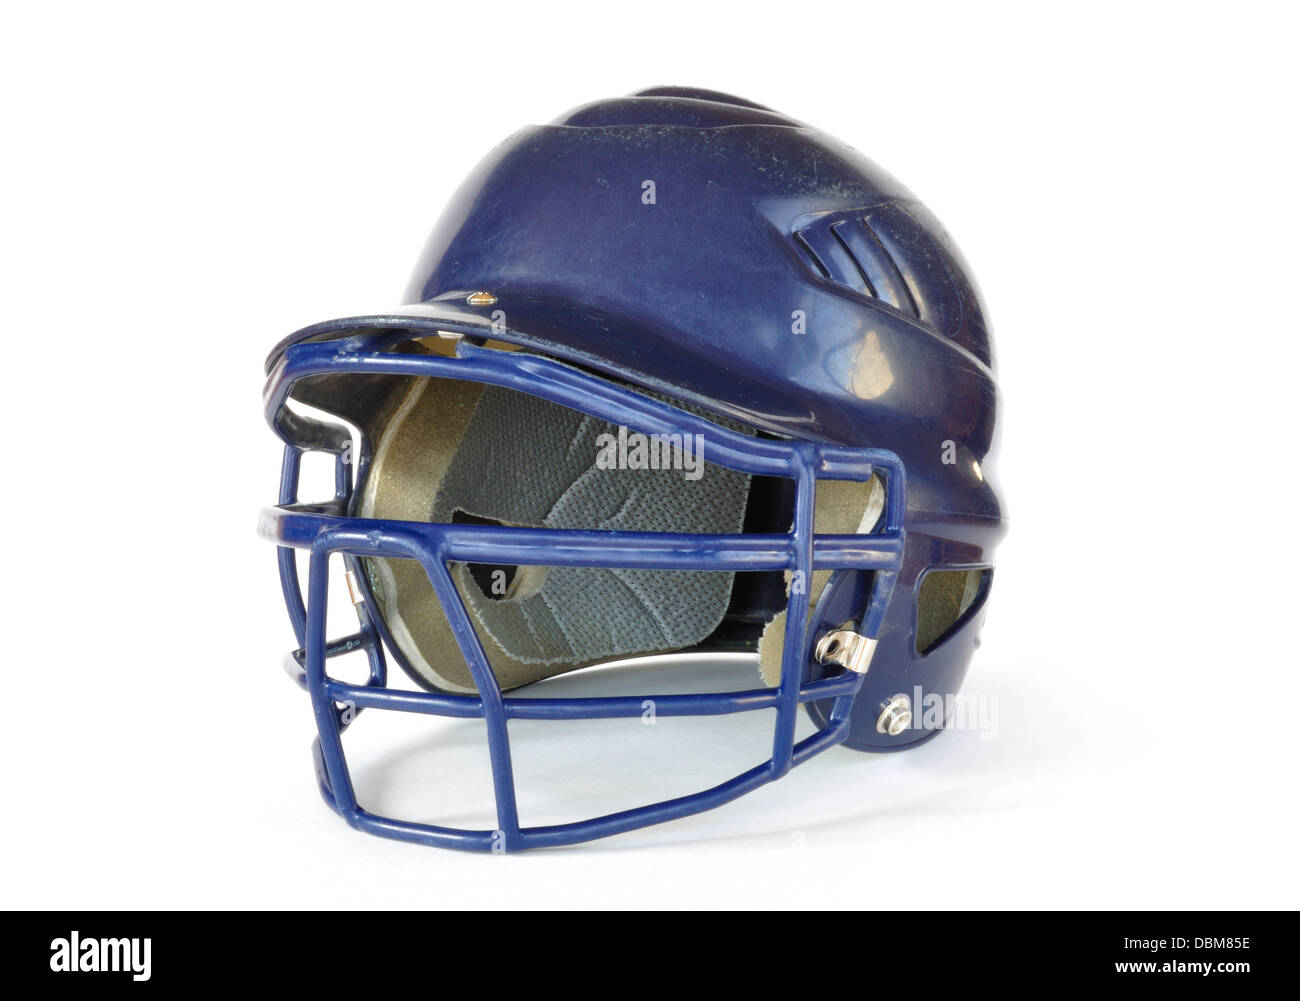 Blue Baseball helmet with a facemask - Stock Image